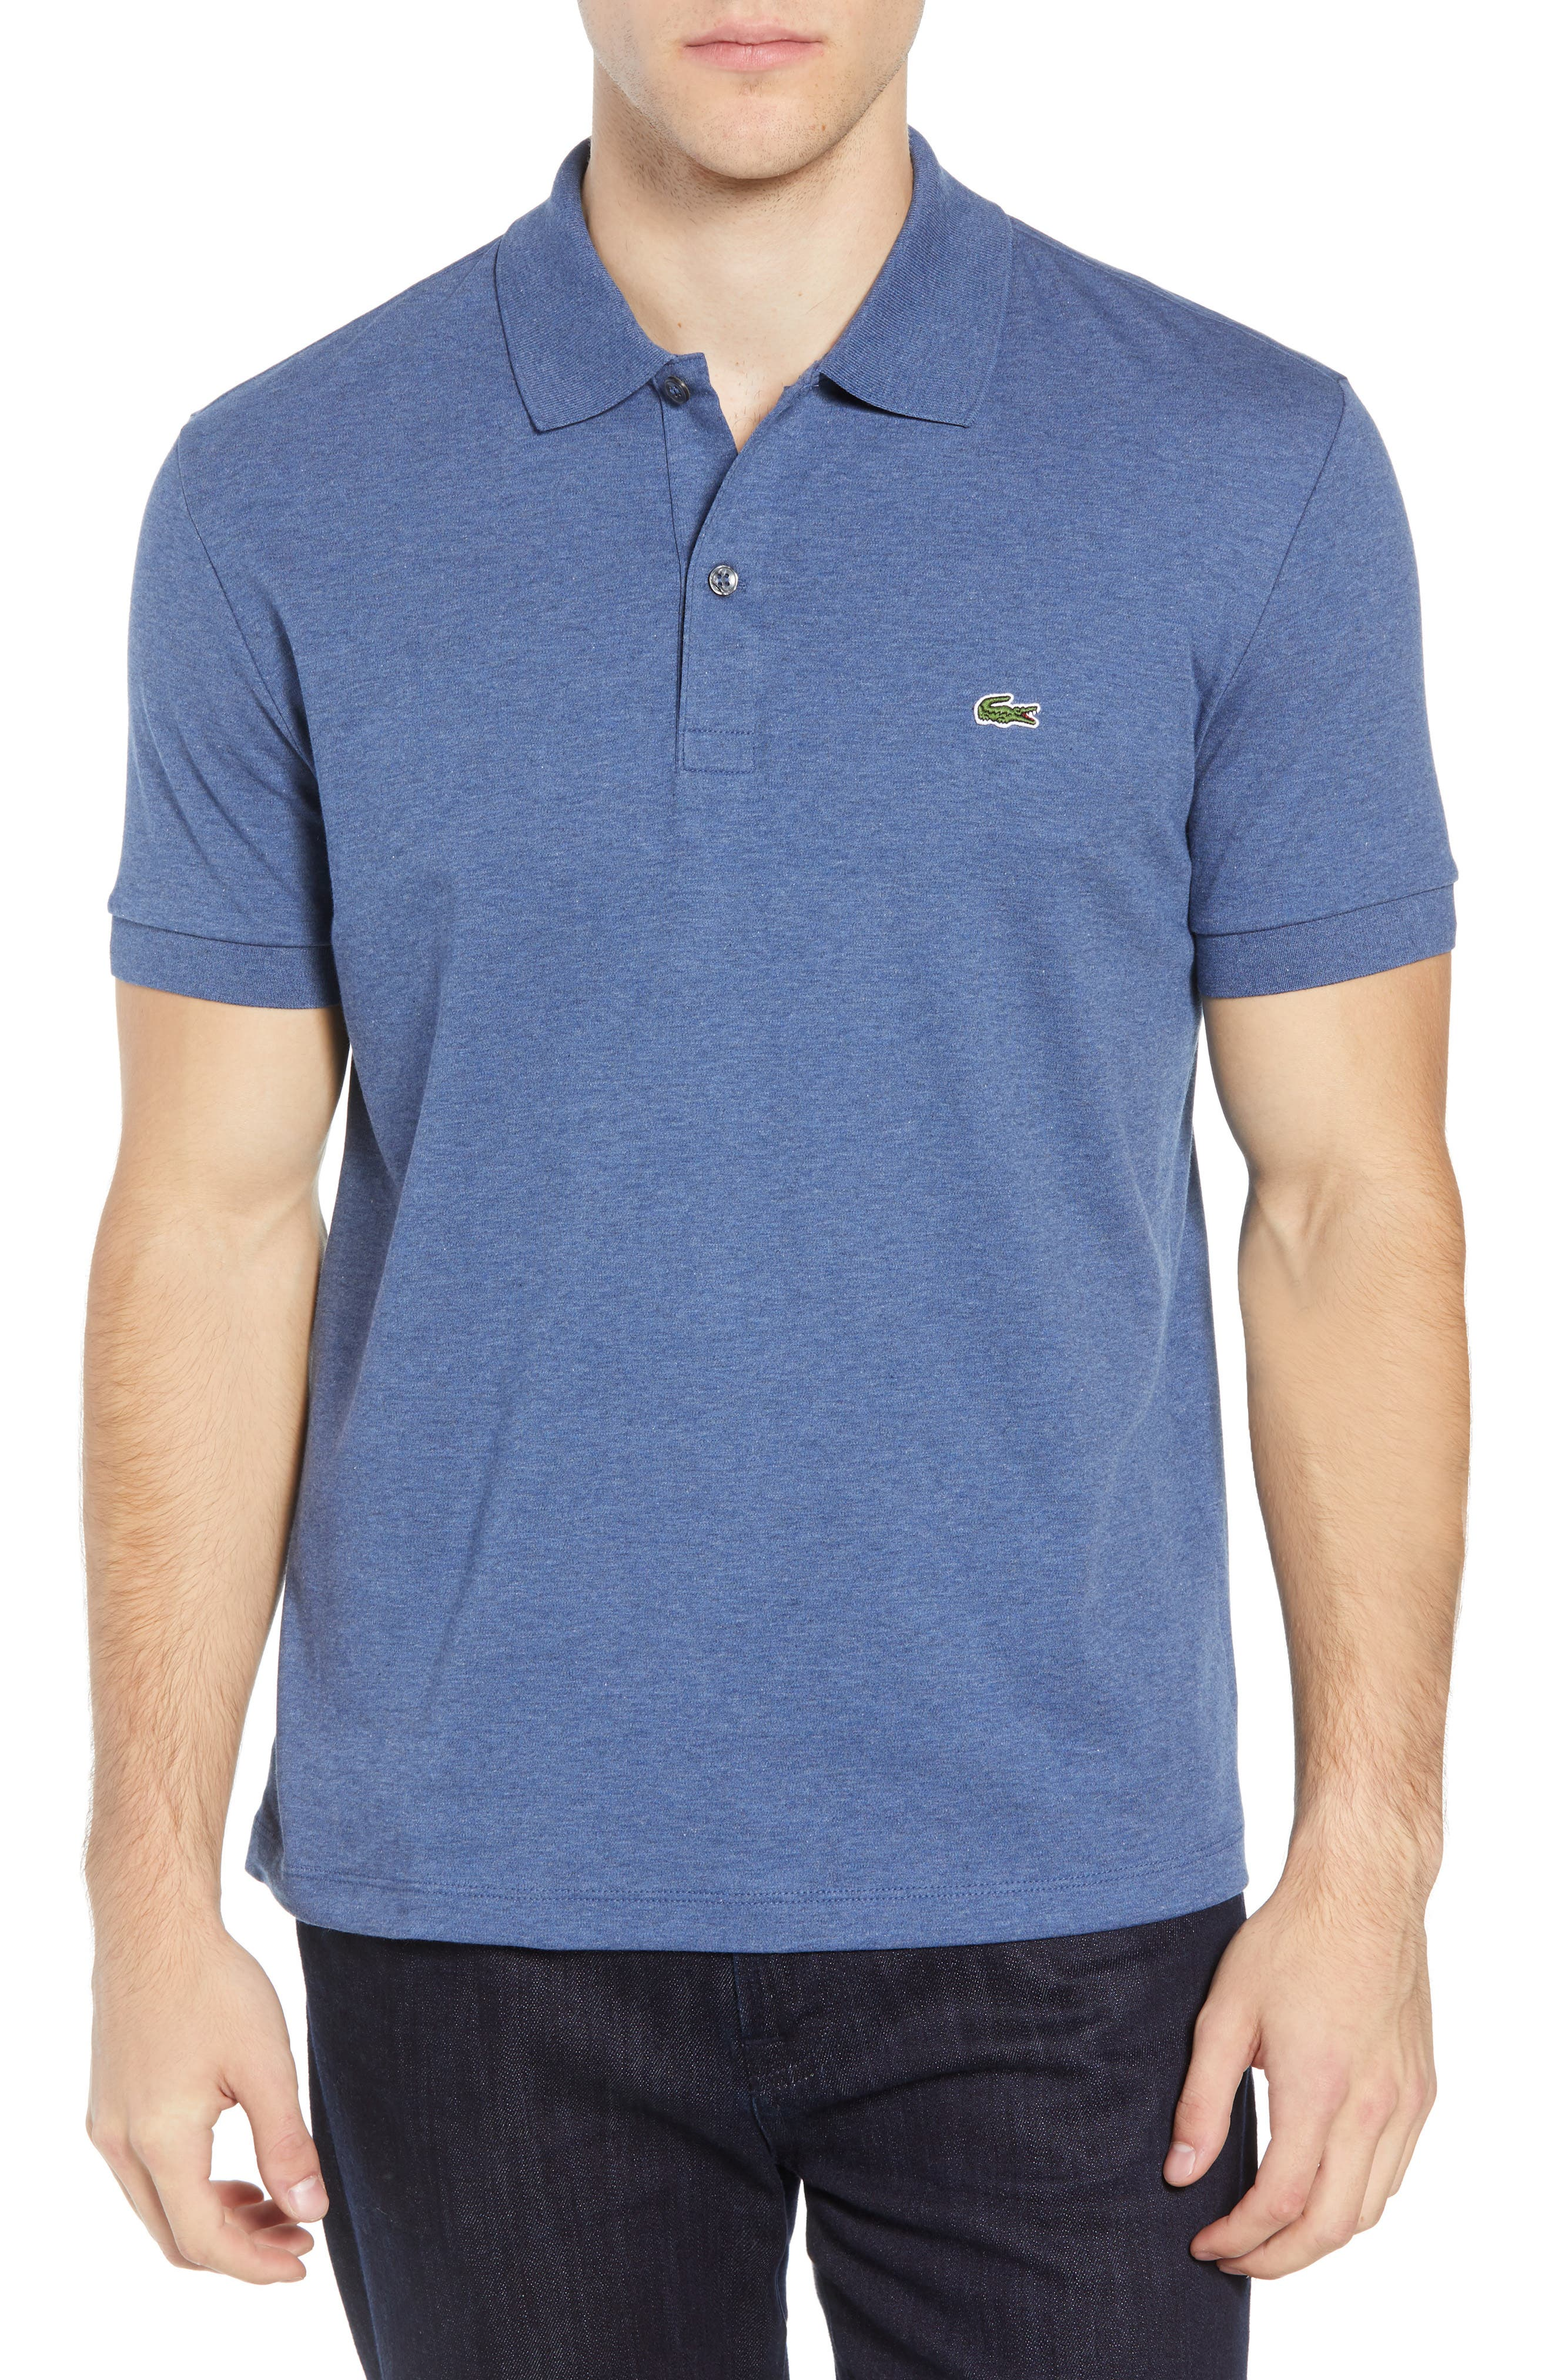 LACOSTE, Jersey Interlock Regular Fit Polo, Main thumbnail 1, color, CRUISE CHINE